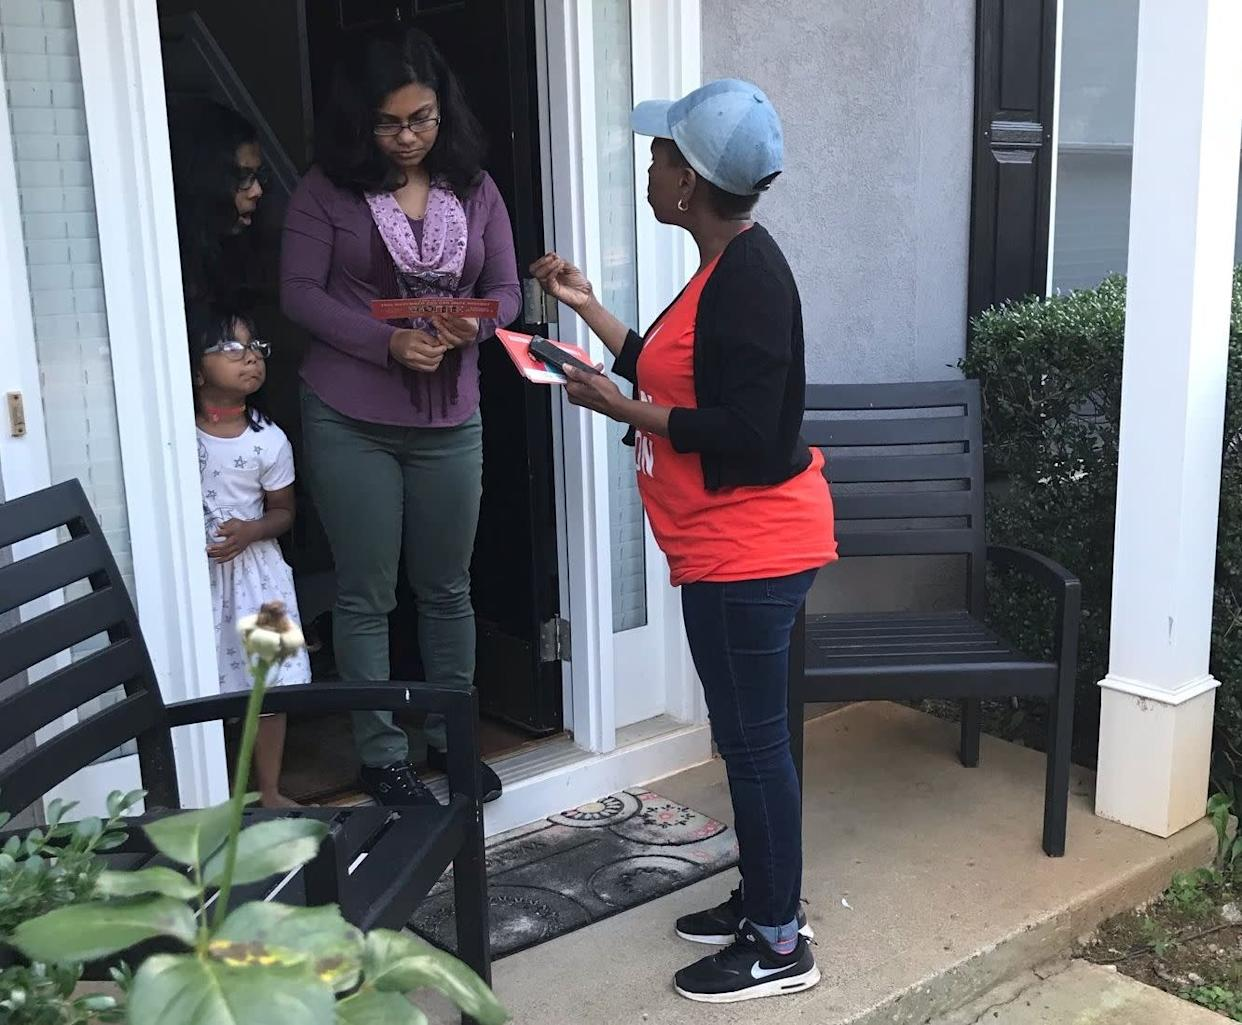 Nilaja Fabien, a 46-year-old nanny originally from Trinidad, talks to a woman in Gwinnett County, Georgia, about Stacey Abrams' campaign for governor. (Photo: Laura Bassett/HuffPost)